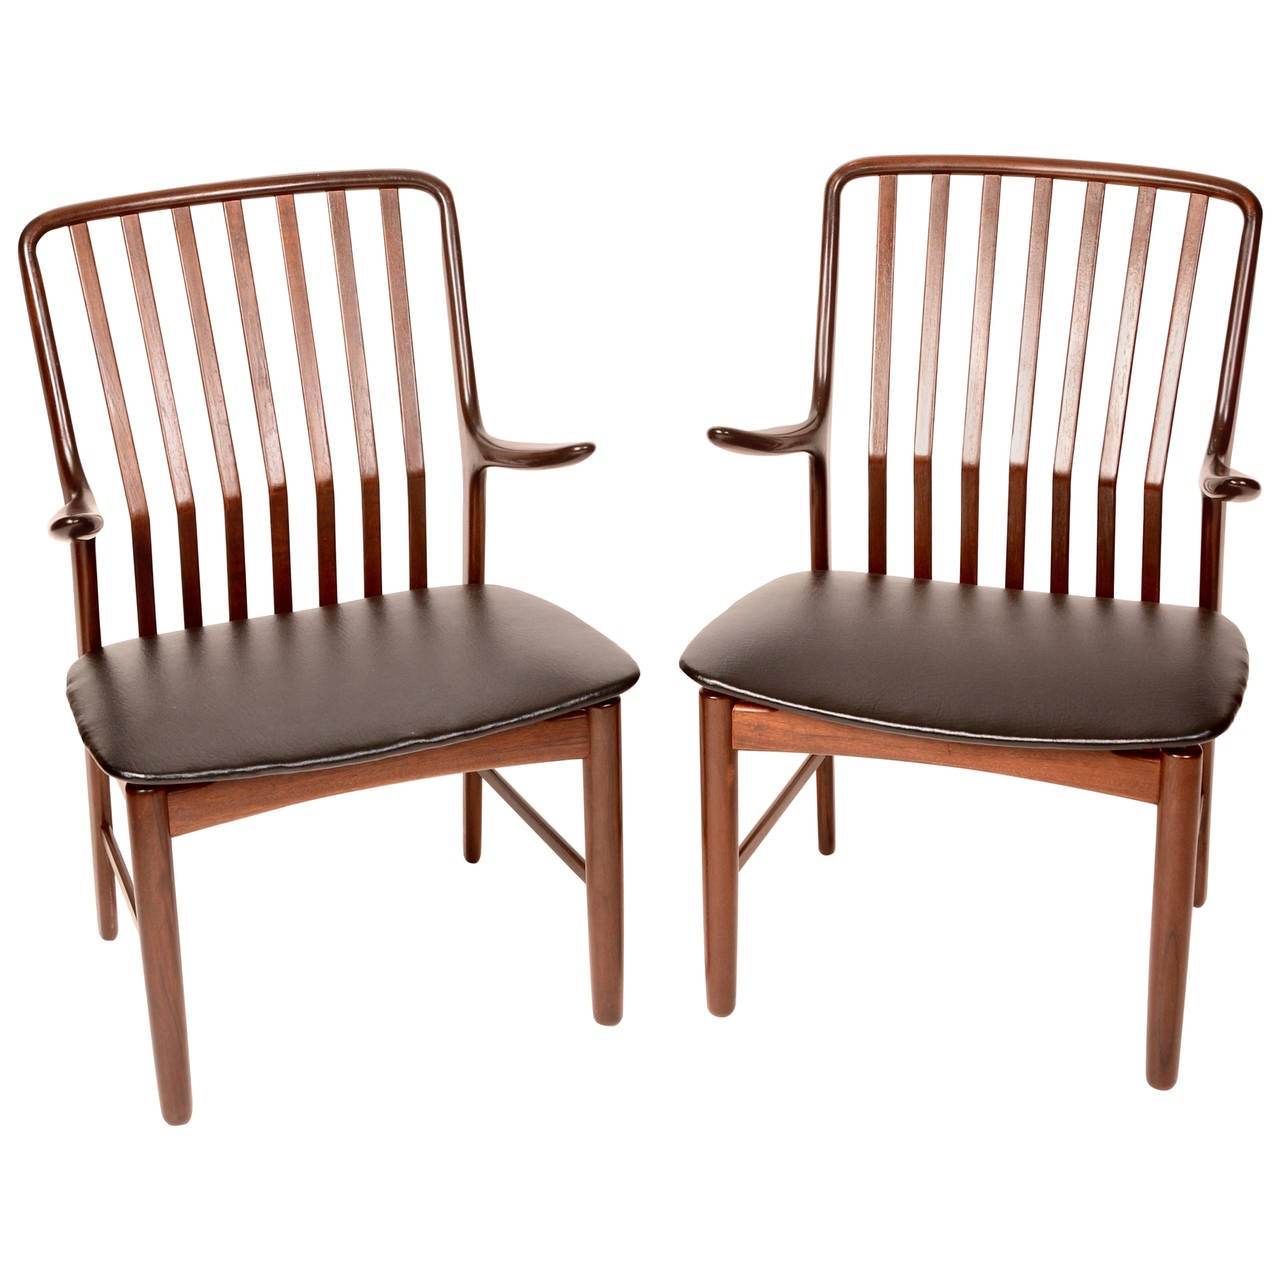 Danish Arm Chairs by Svend A. Madsen for Moreddi, Set of 2 1